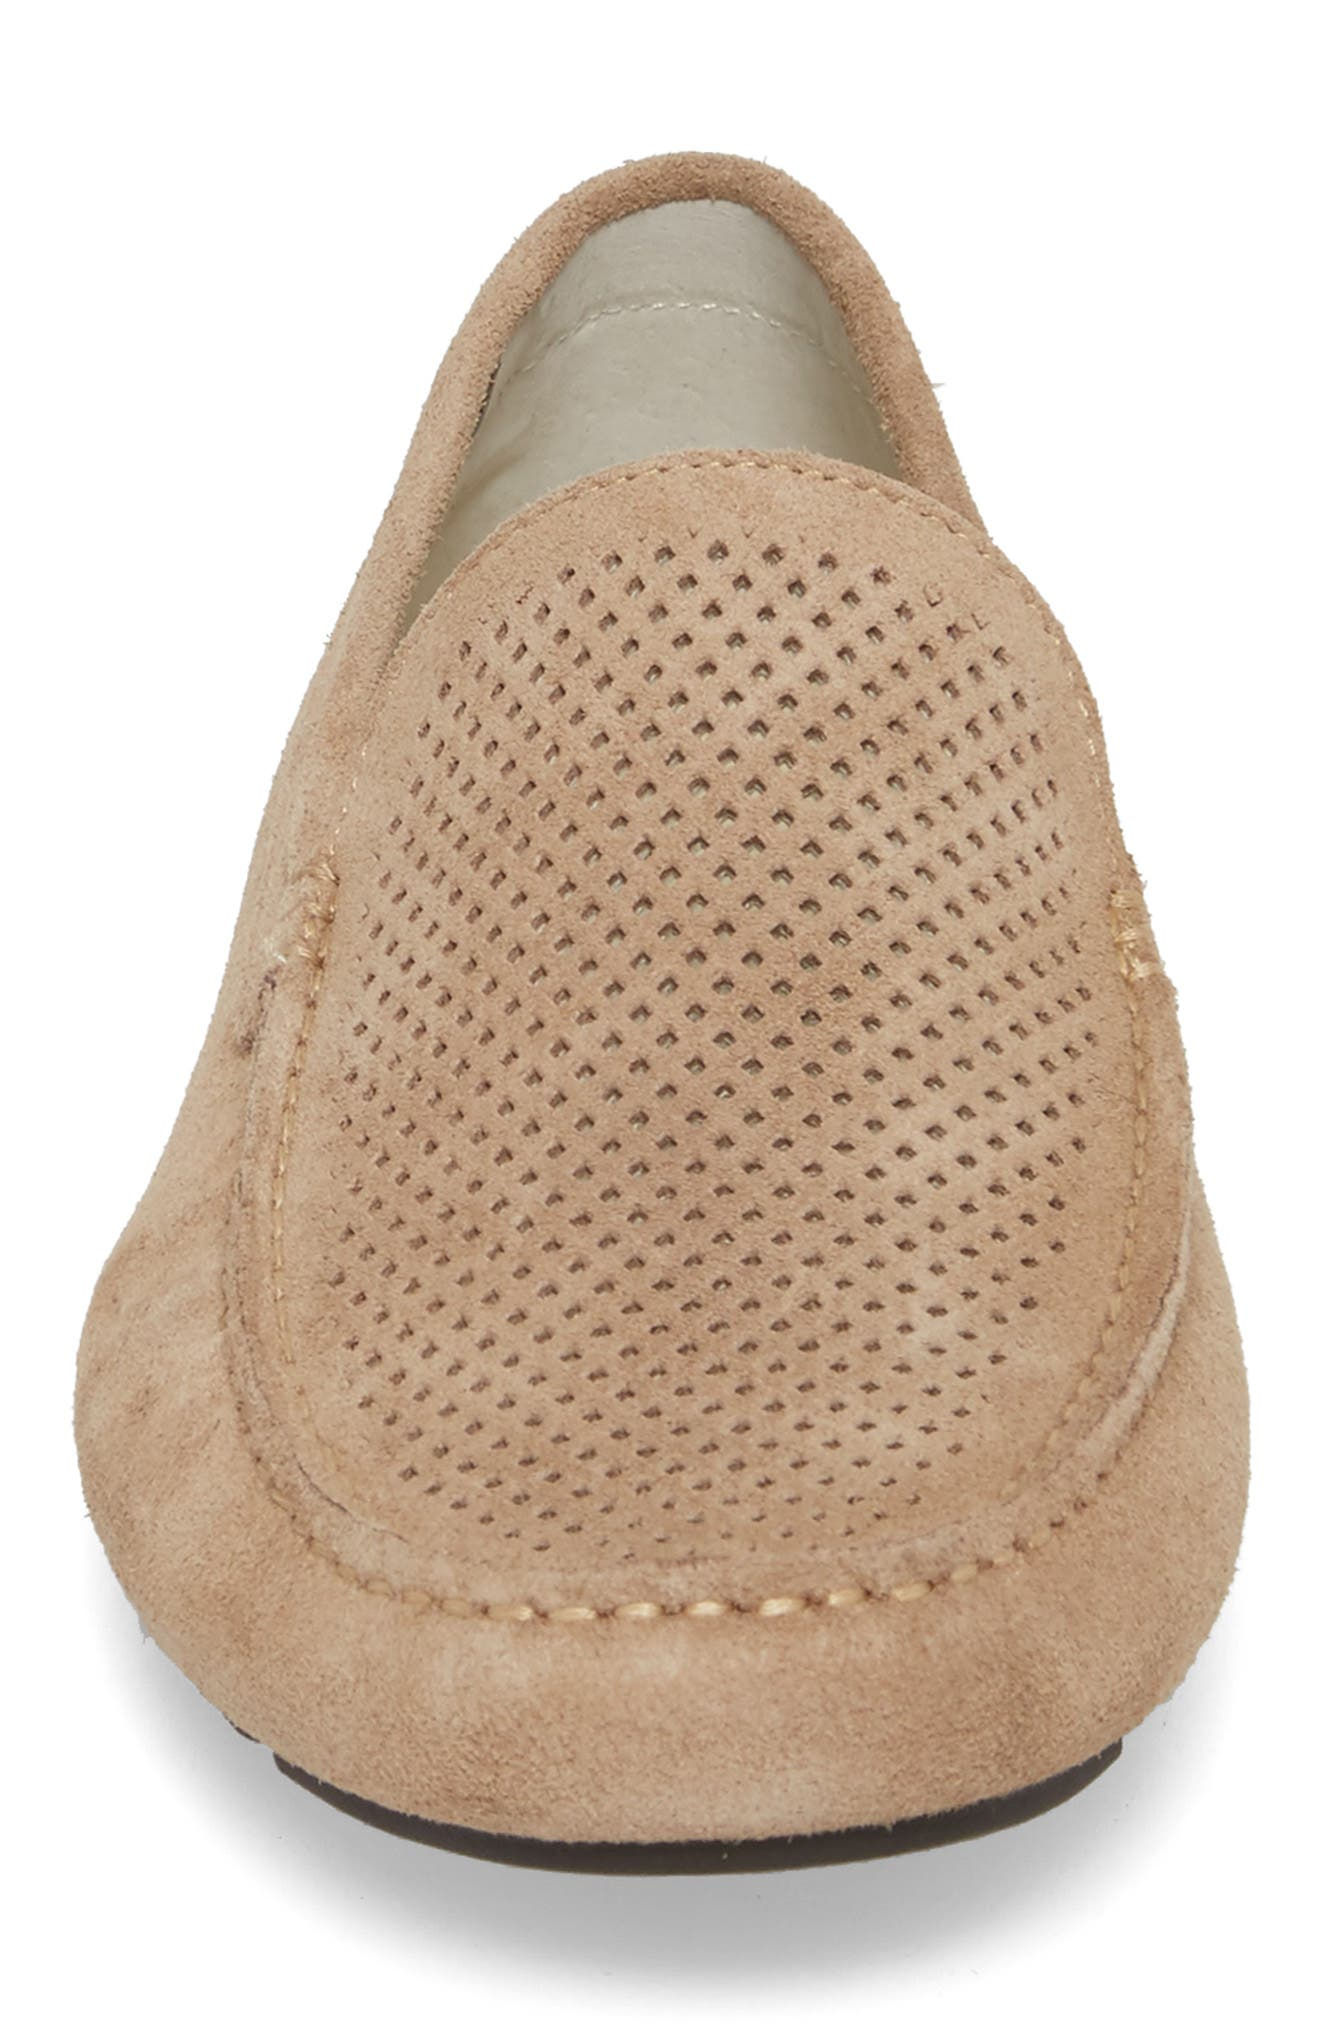 Scottsdale Perforated Driving Moccasin,                             Alternate thumbnail 4, color,                             Tan Suede